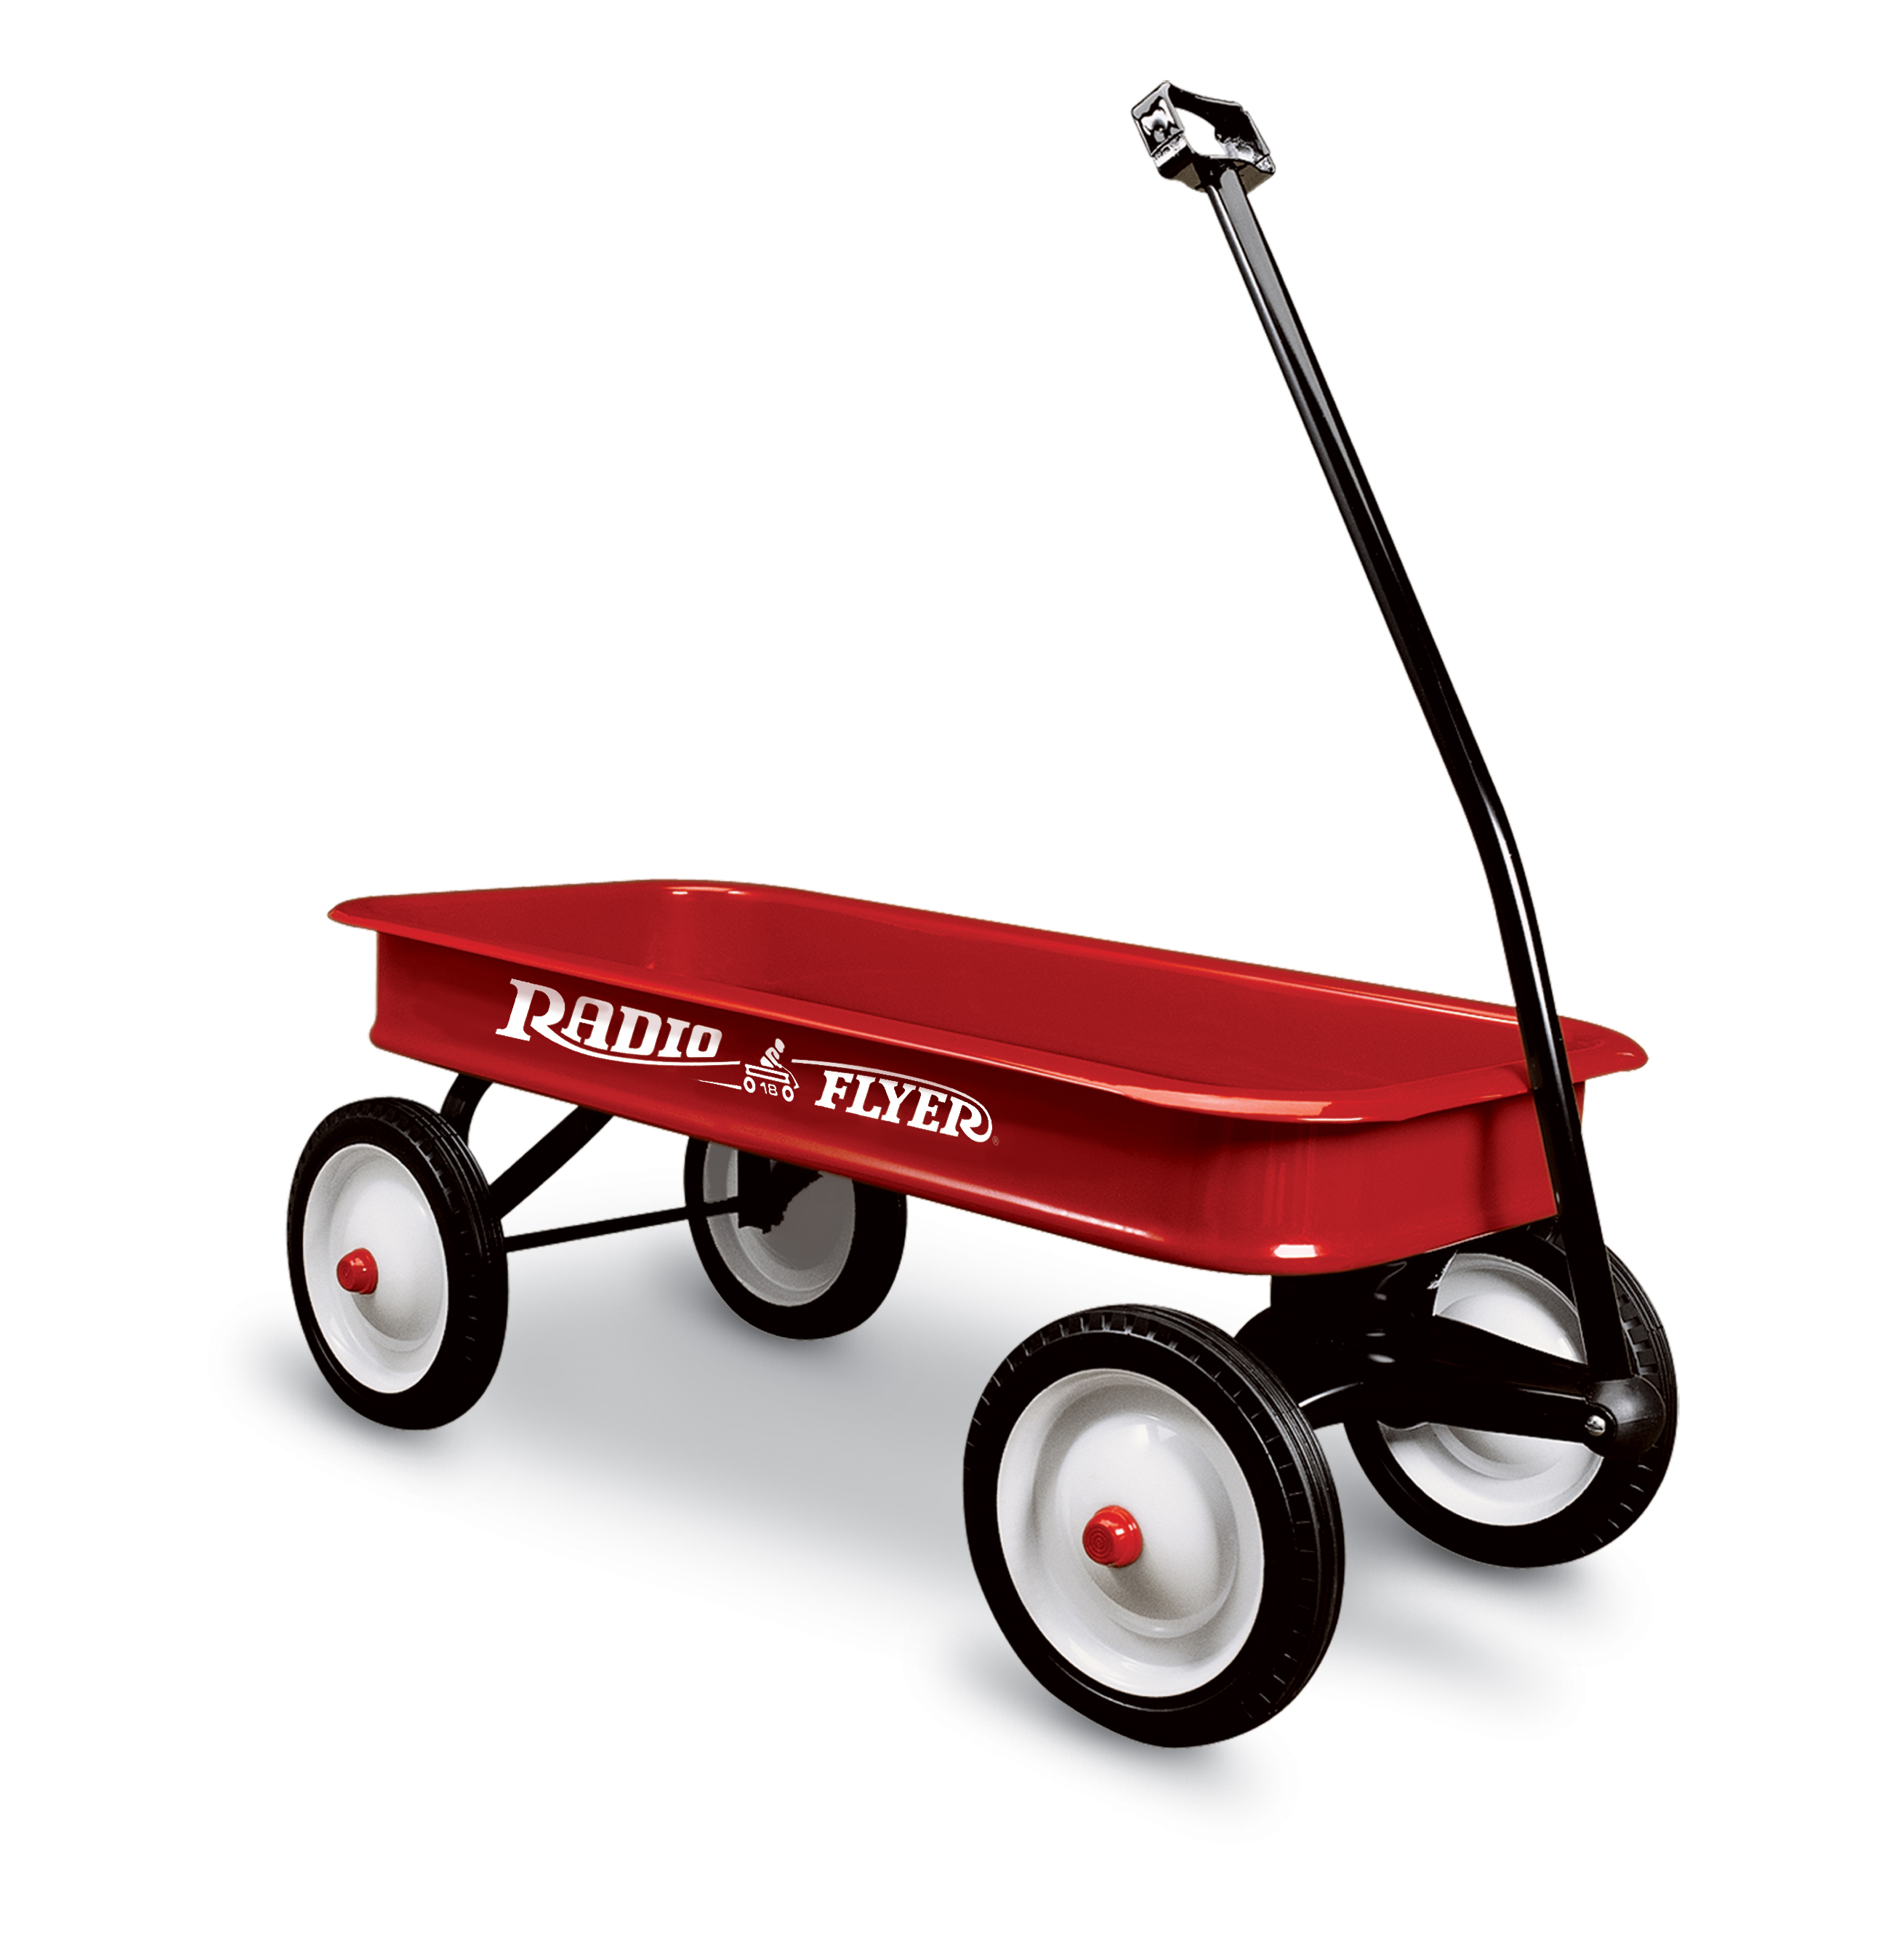 Radio Flyer strictly controls the product parts that it offers for sale and does not sell parts for resale purposes, nor does it permit use of parts in third party products. Radio Flyer is .